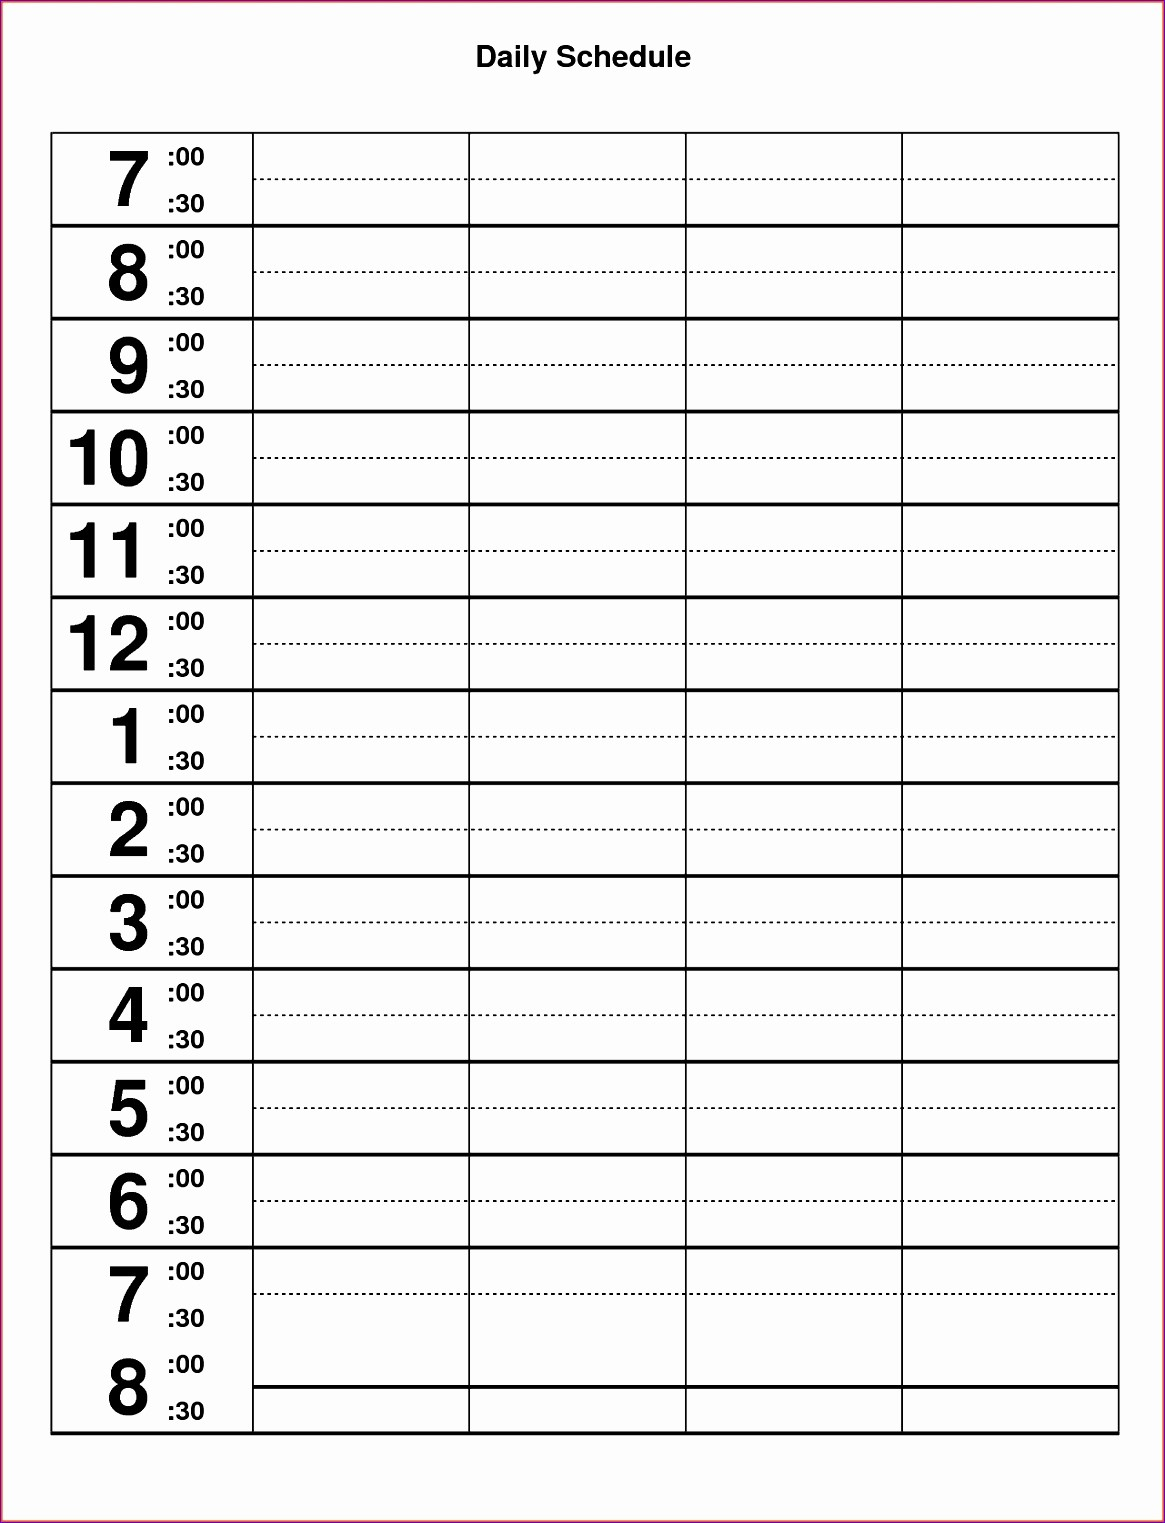 Daily Hourly Schedule Template Excel Best Of 10 Excel Hourly Schedule Template Exceltemplates